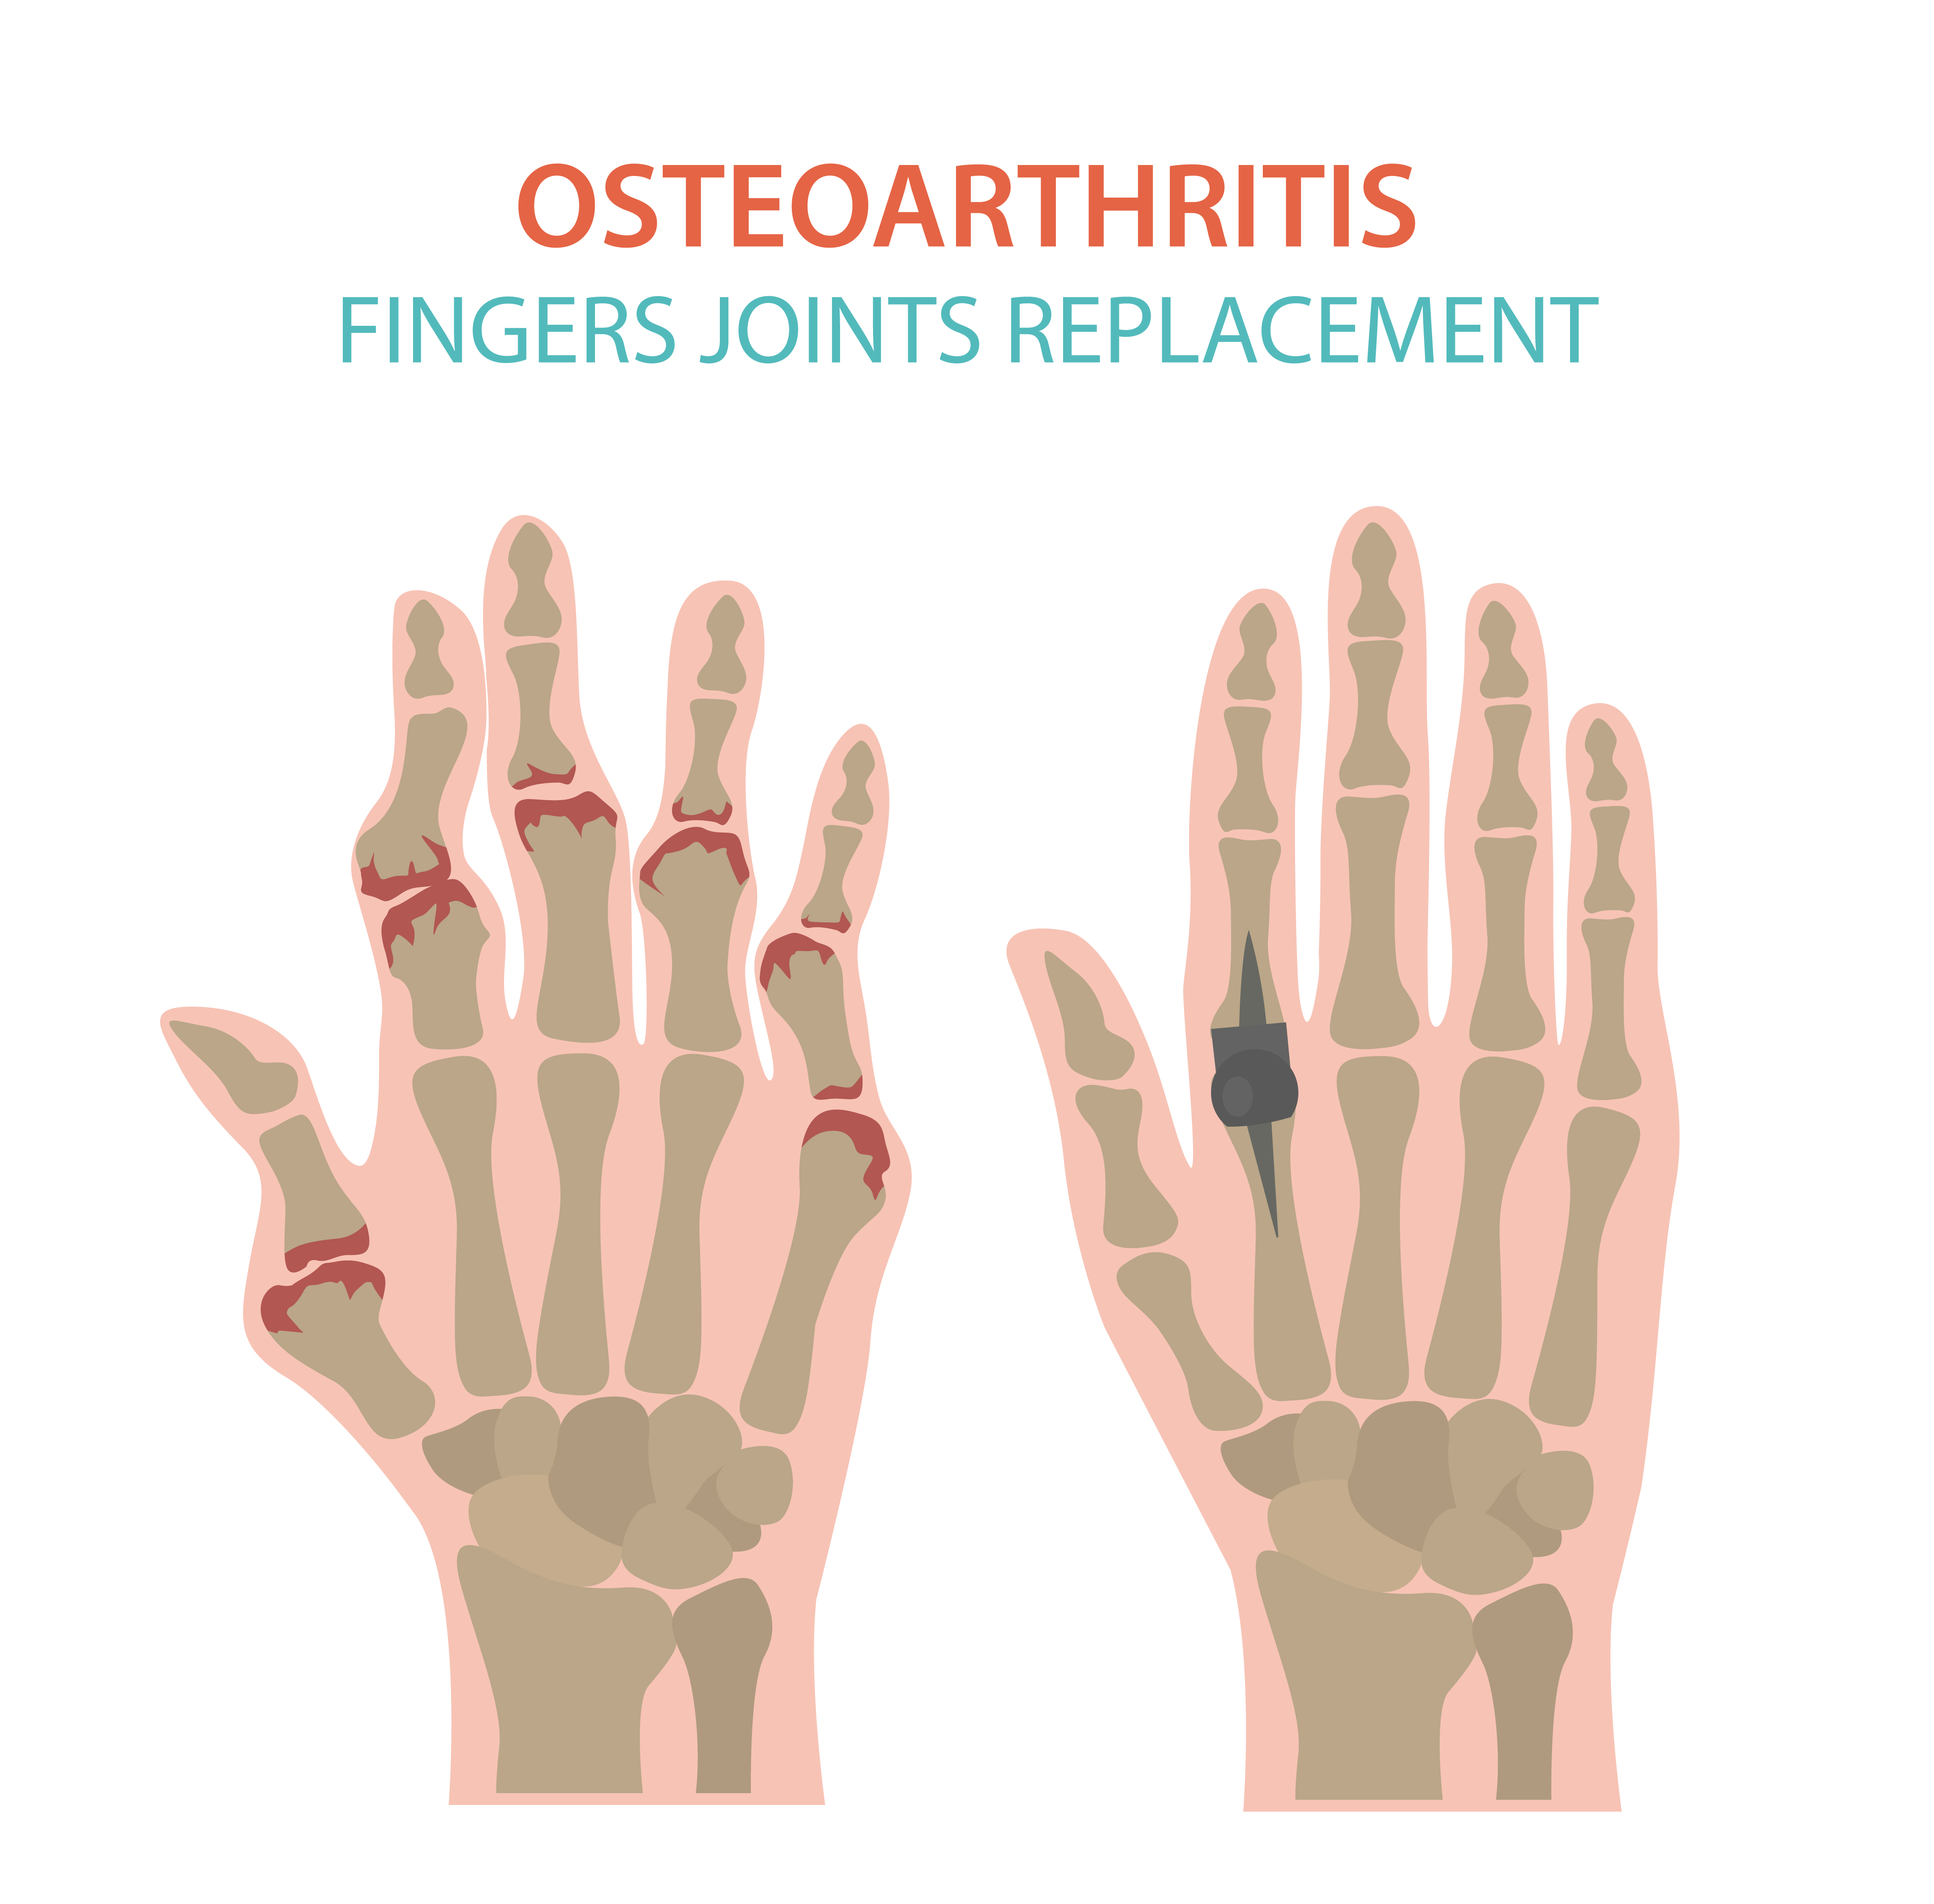 Arthritis, osteoarthritis medical infographic design. Joint repl